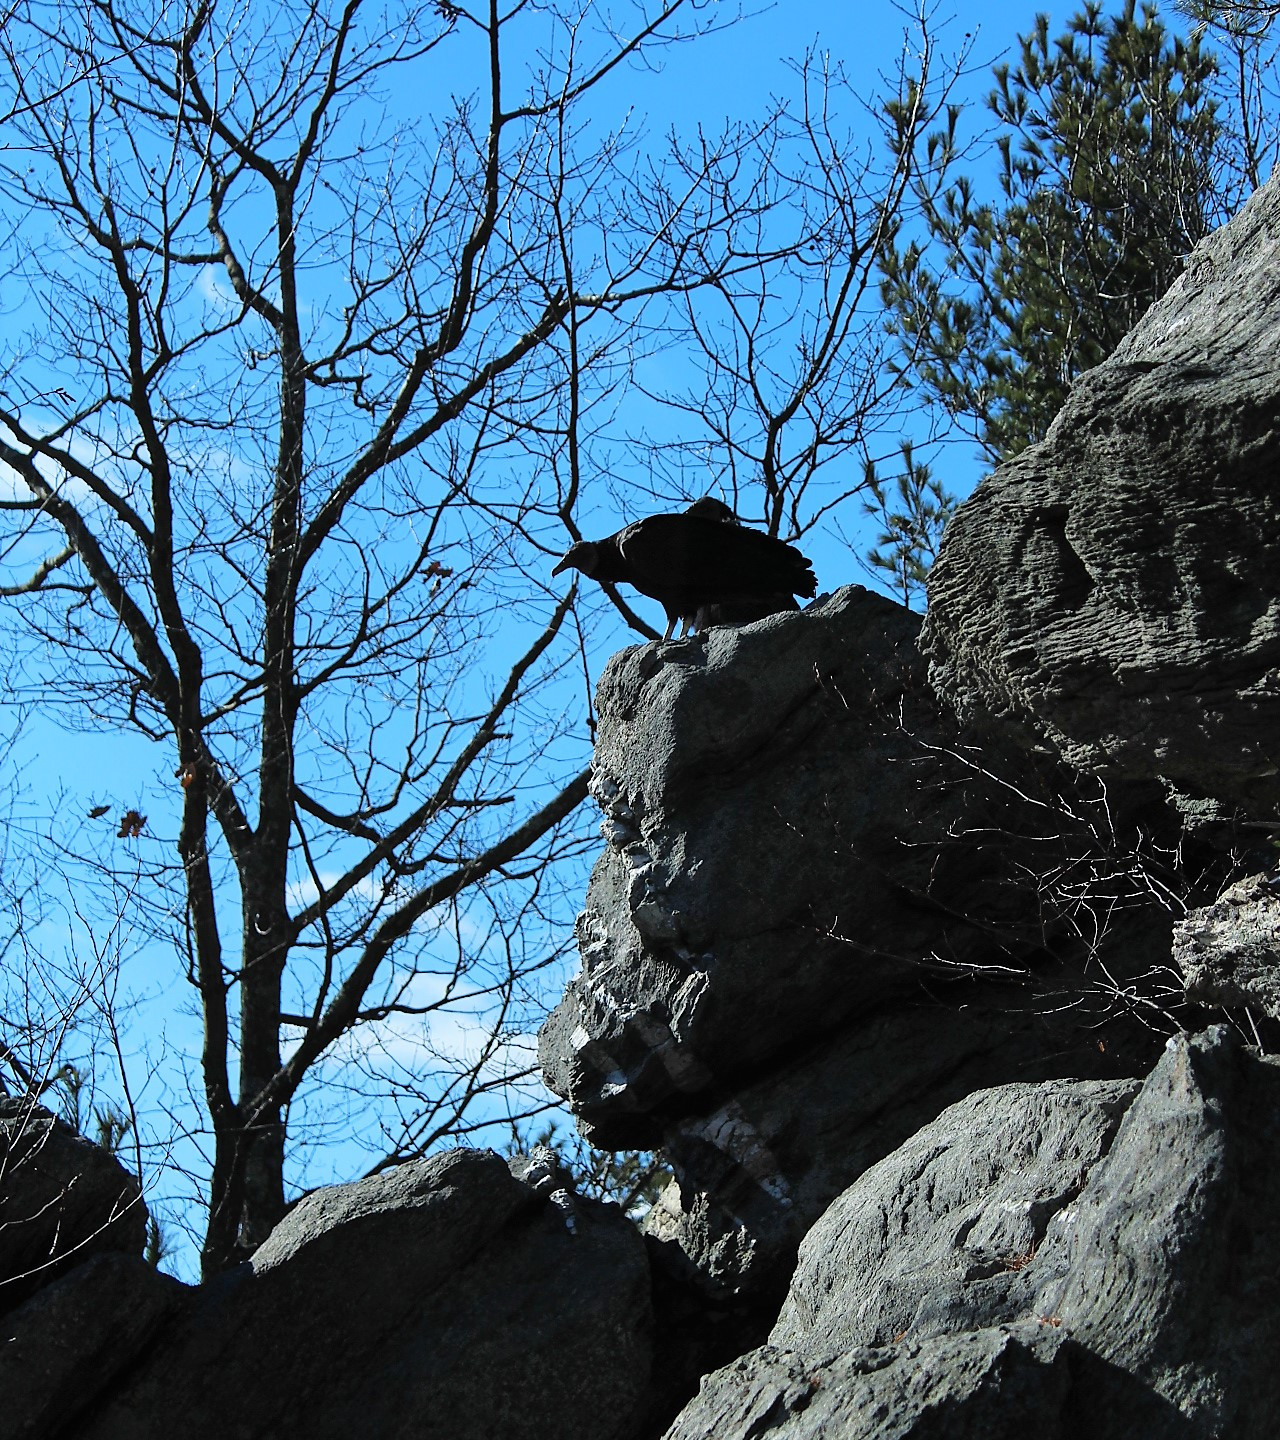 Vultures Perched on the Rocks